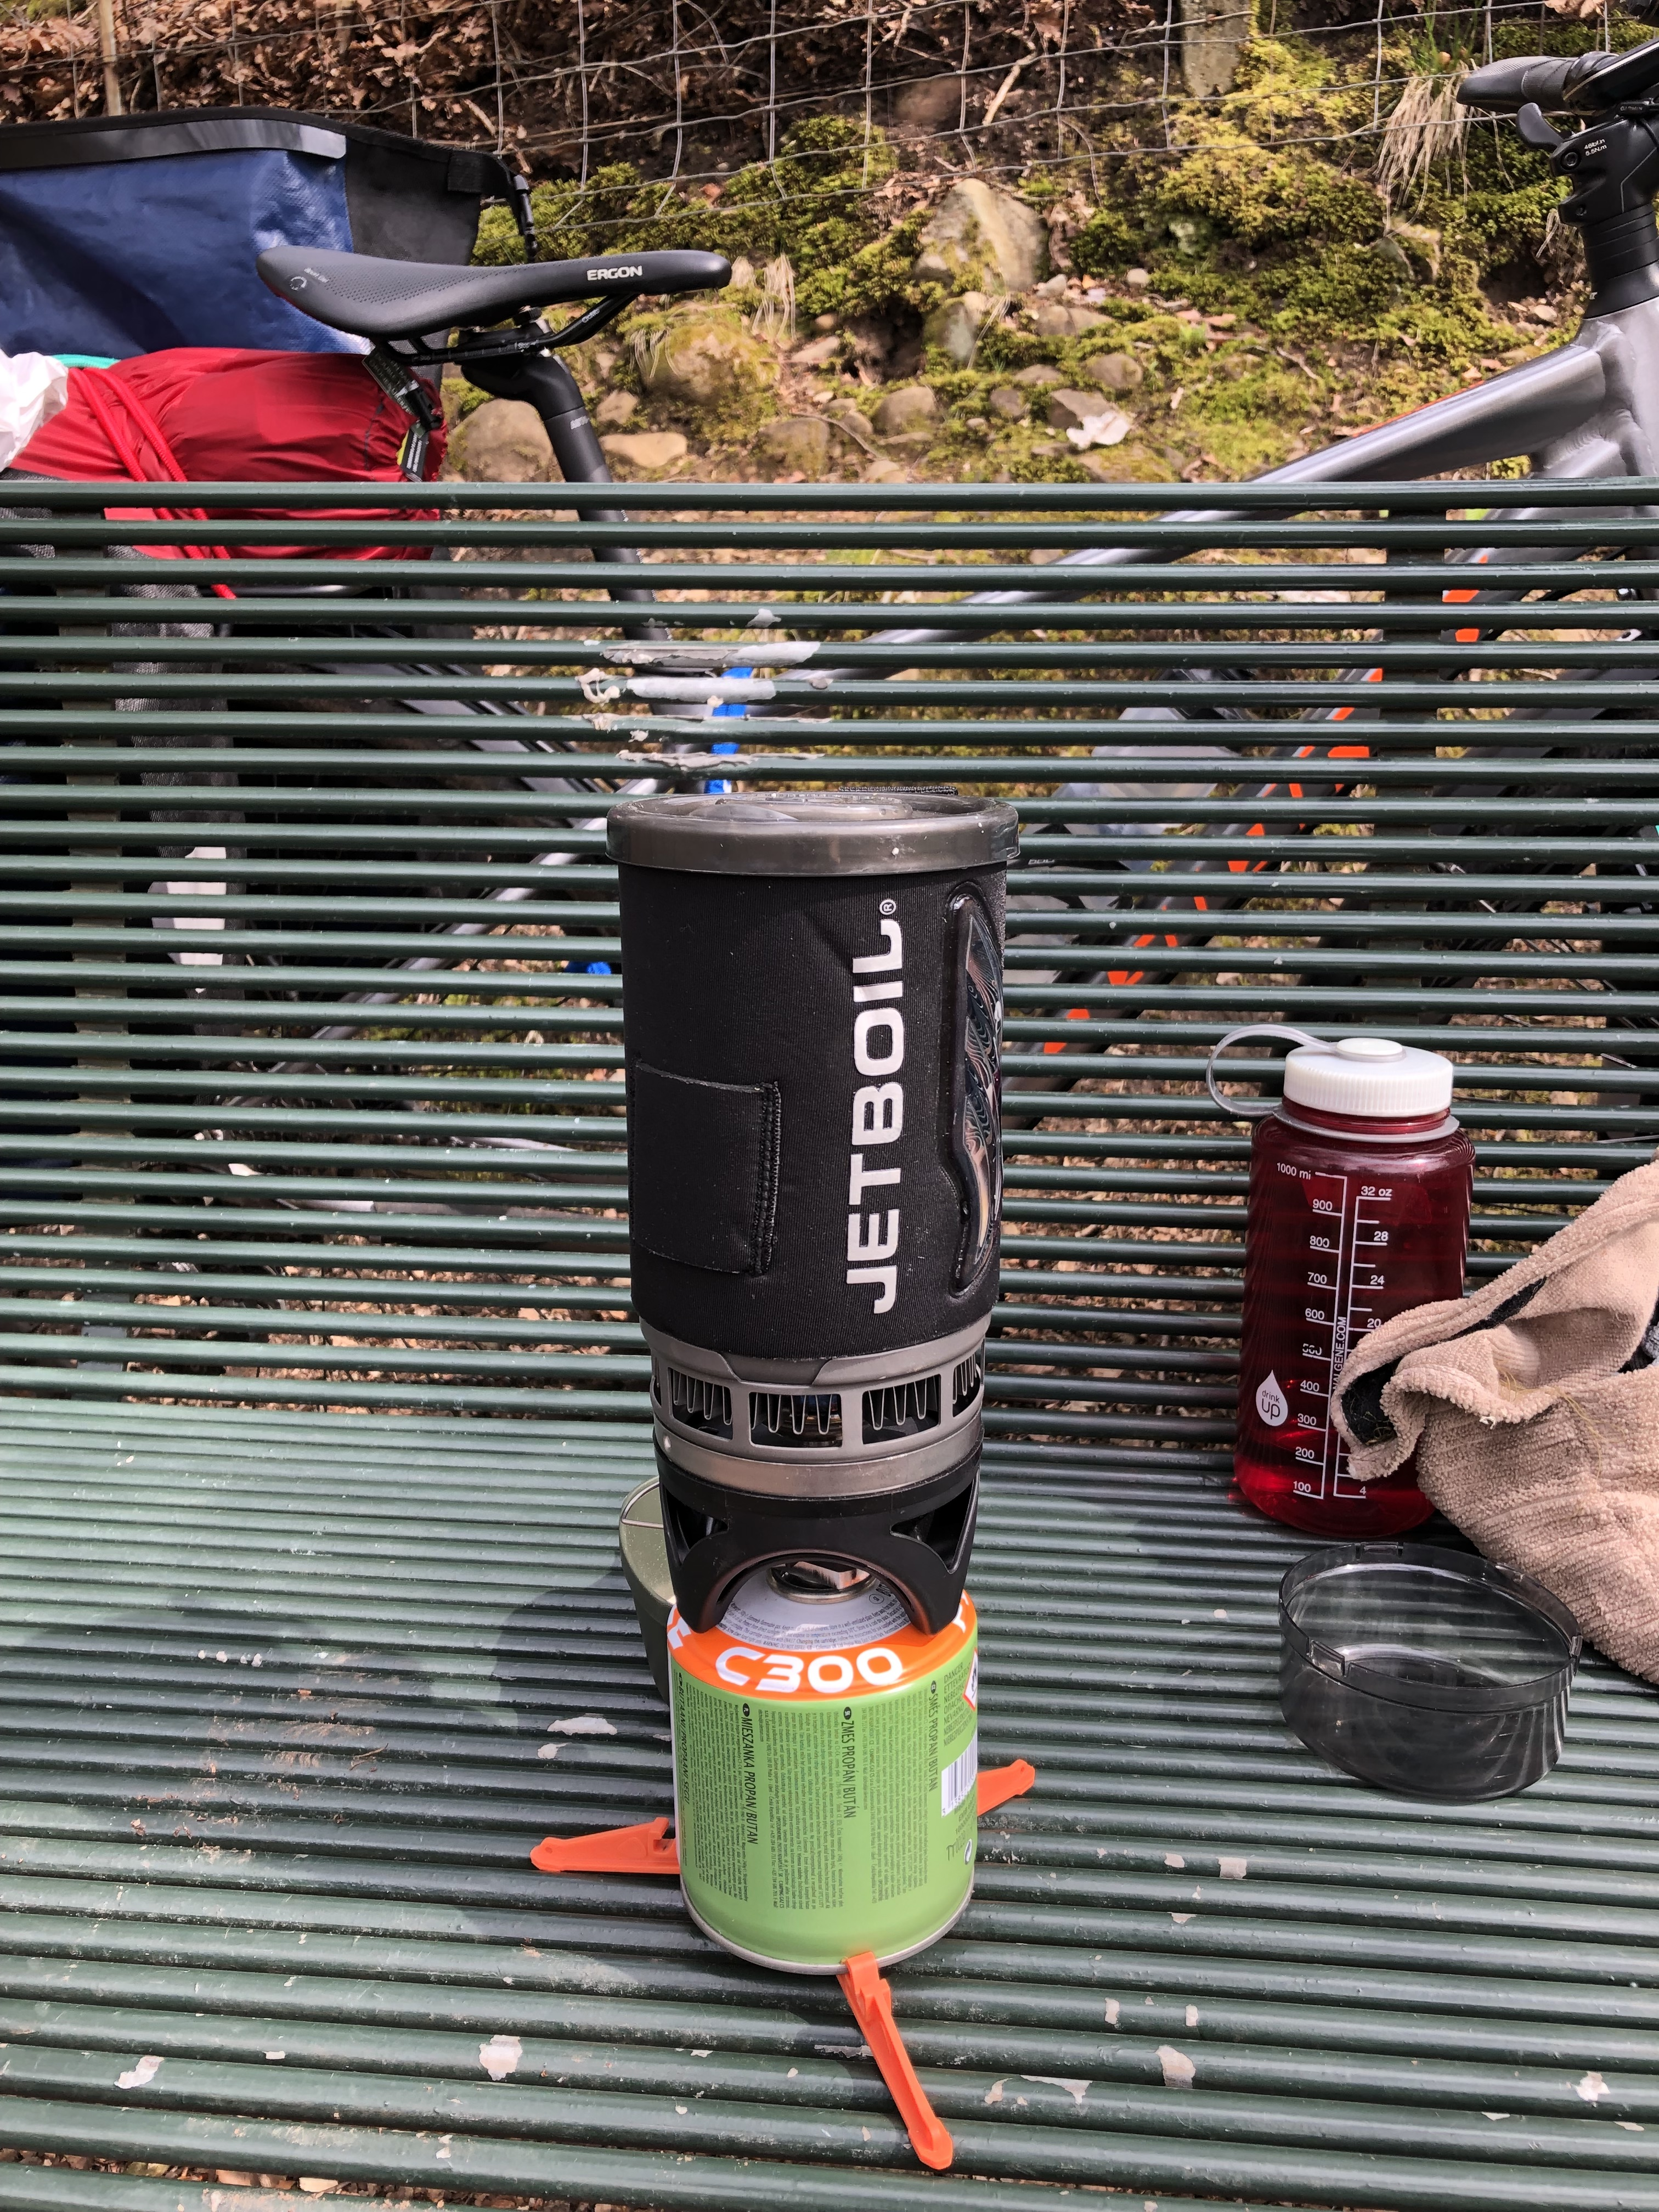 Jet boil cycle touring brecon cardiff giant toughroad